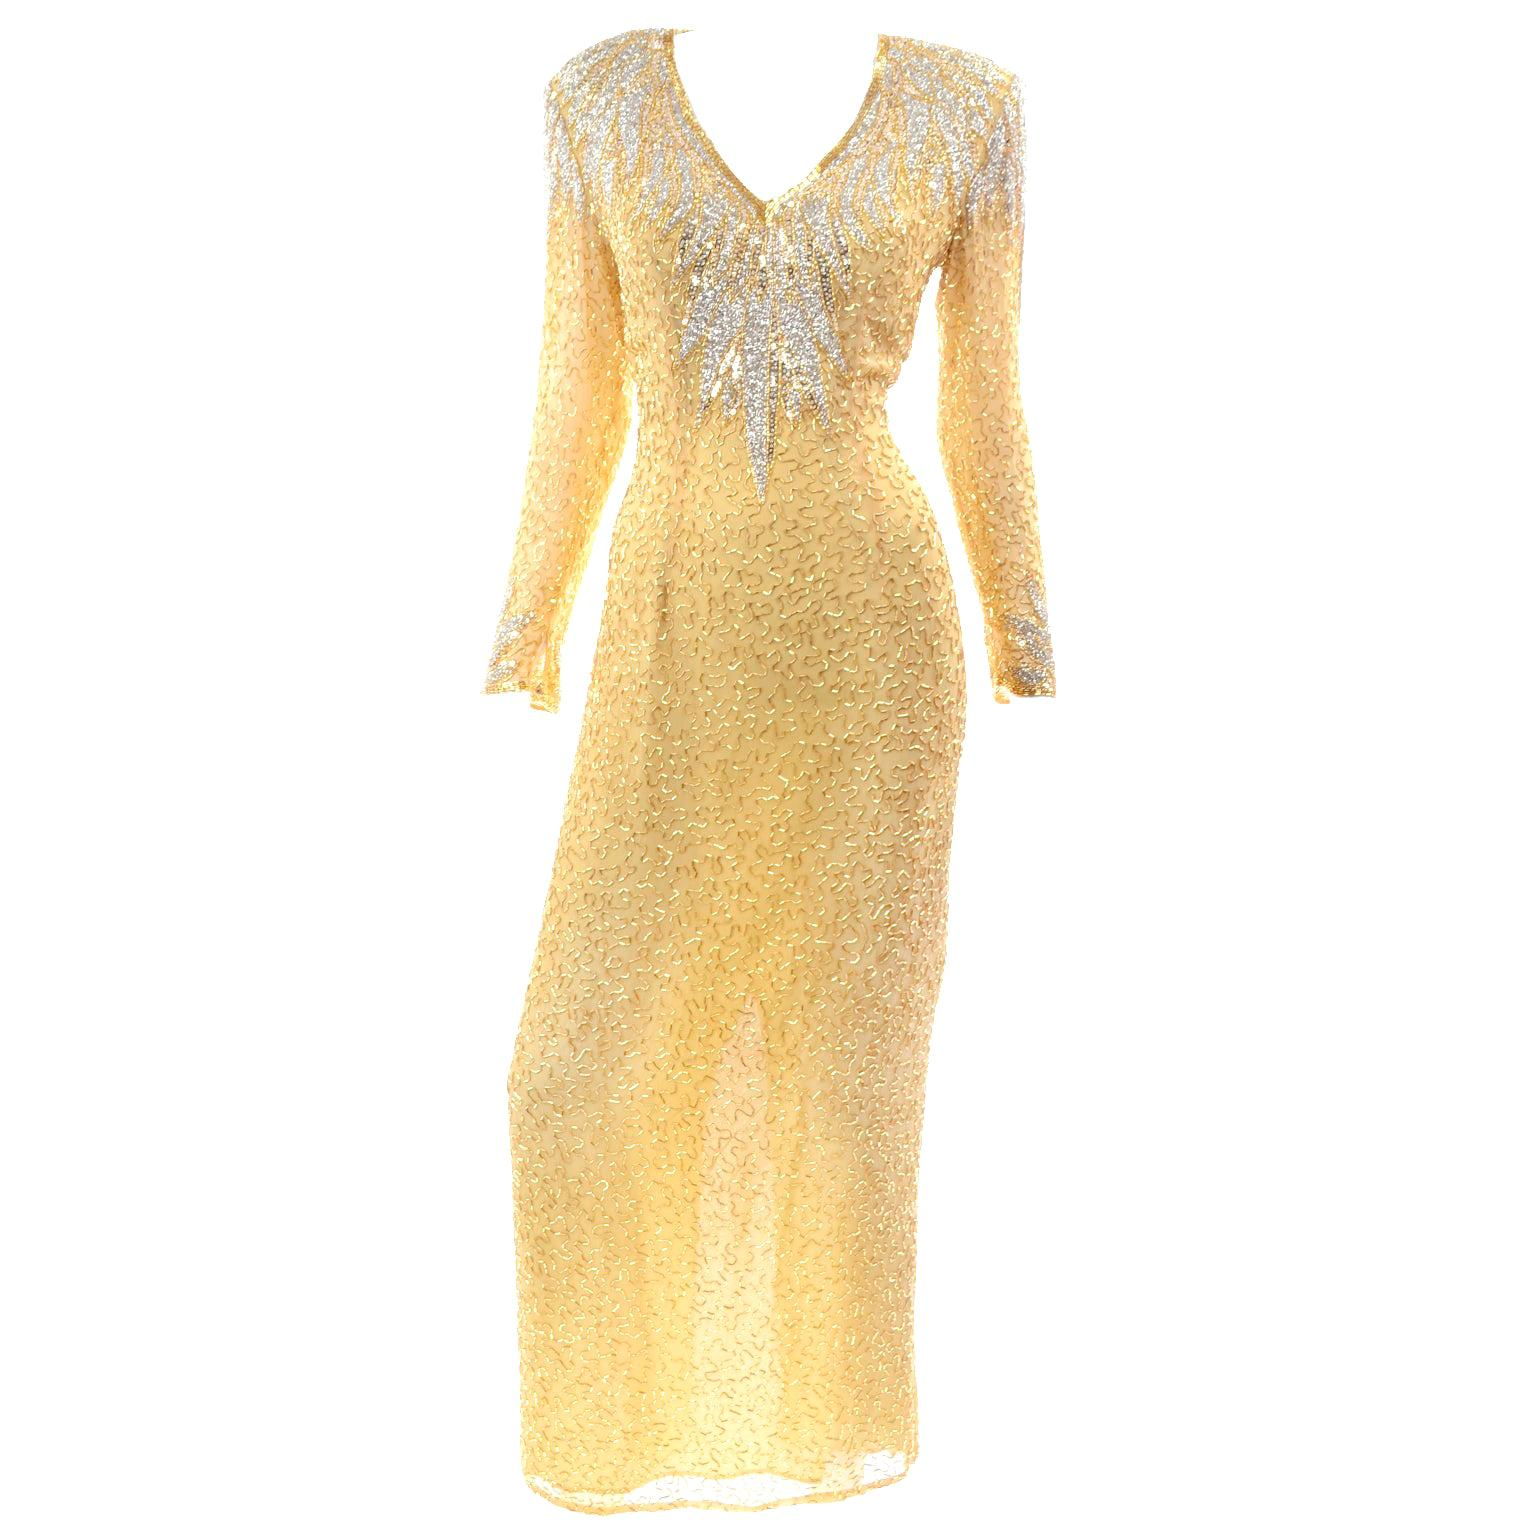 e98d7e881 Vintage and Designer Clothing - 48,981 For Sale at 1stdibs